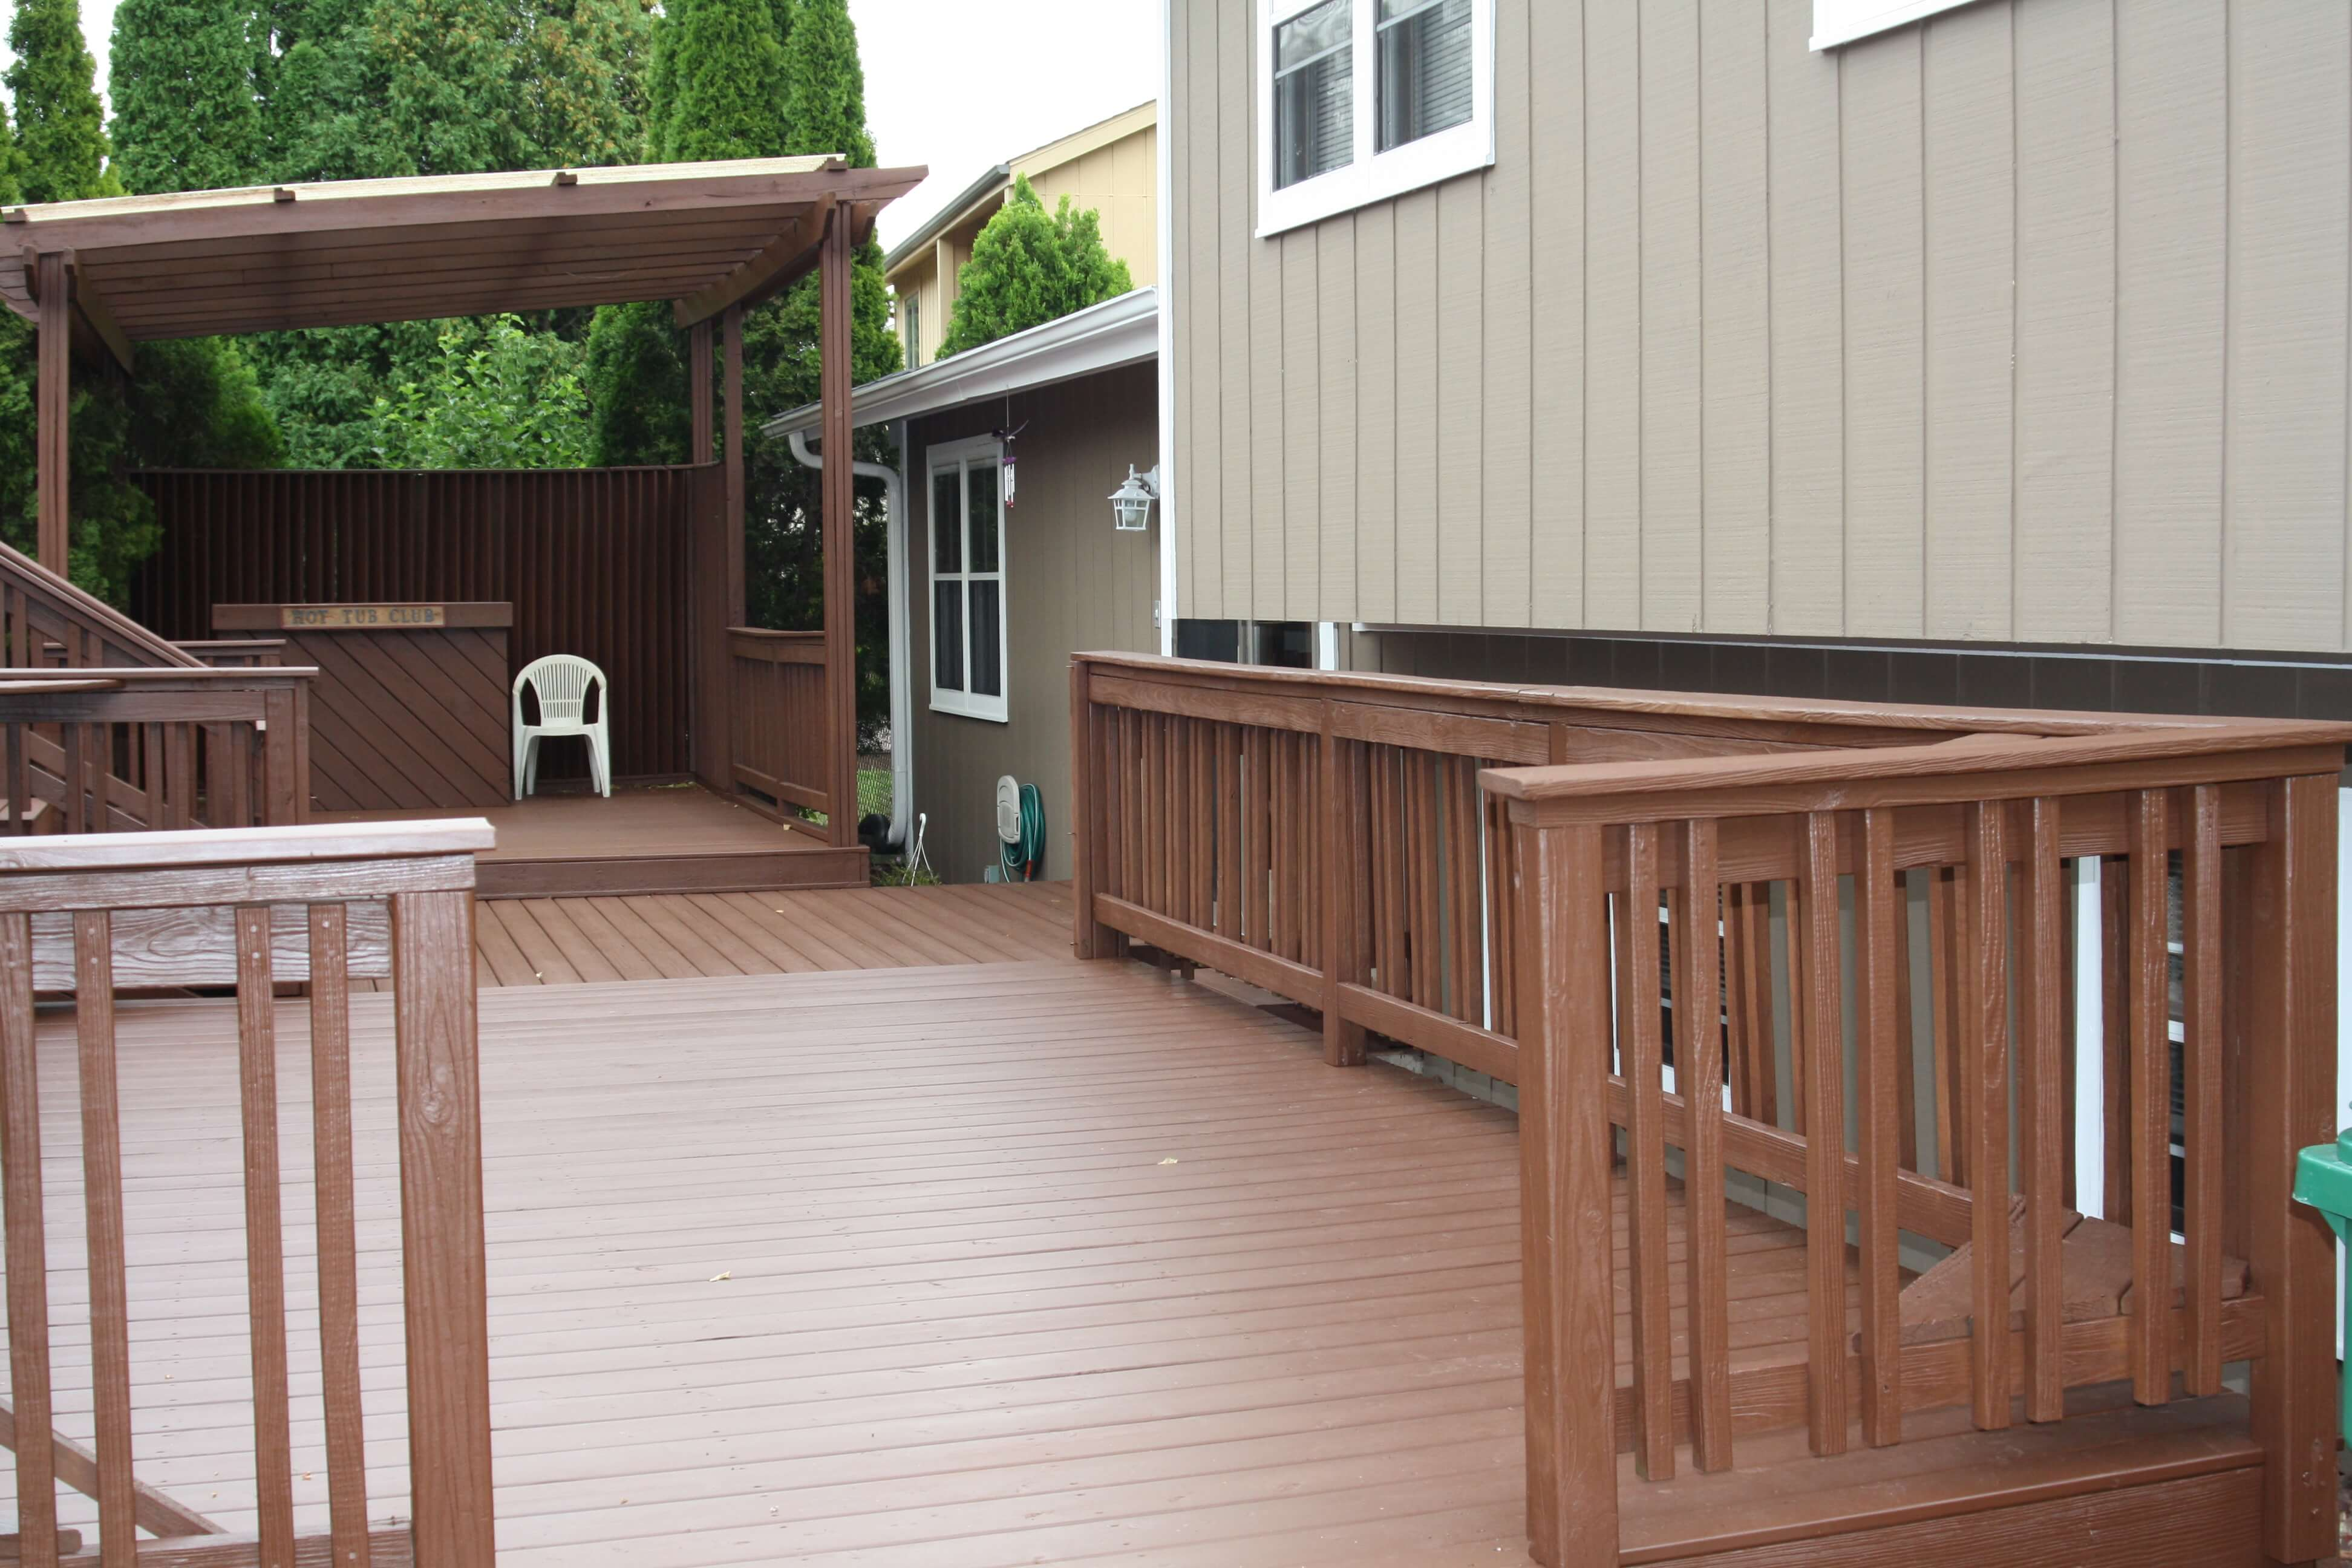 Deck on the back of the house that was recently stained with a dard semi transparent stain.